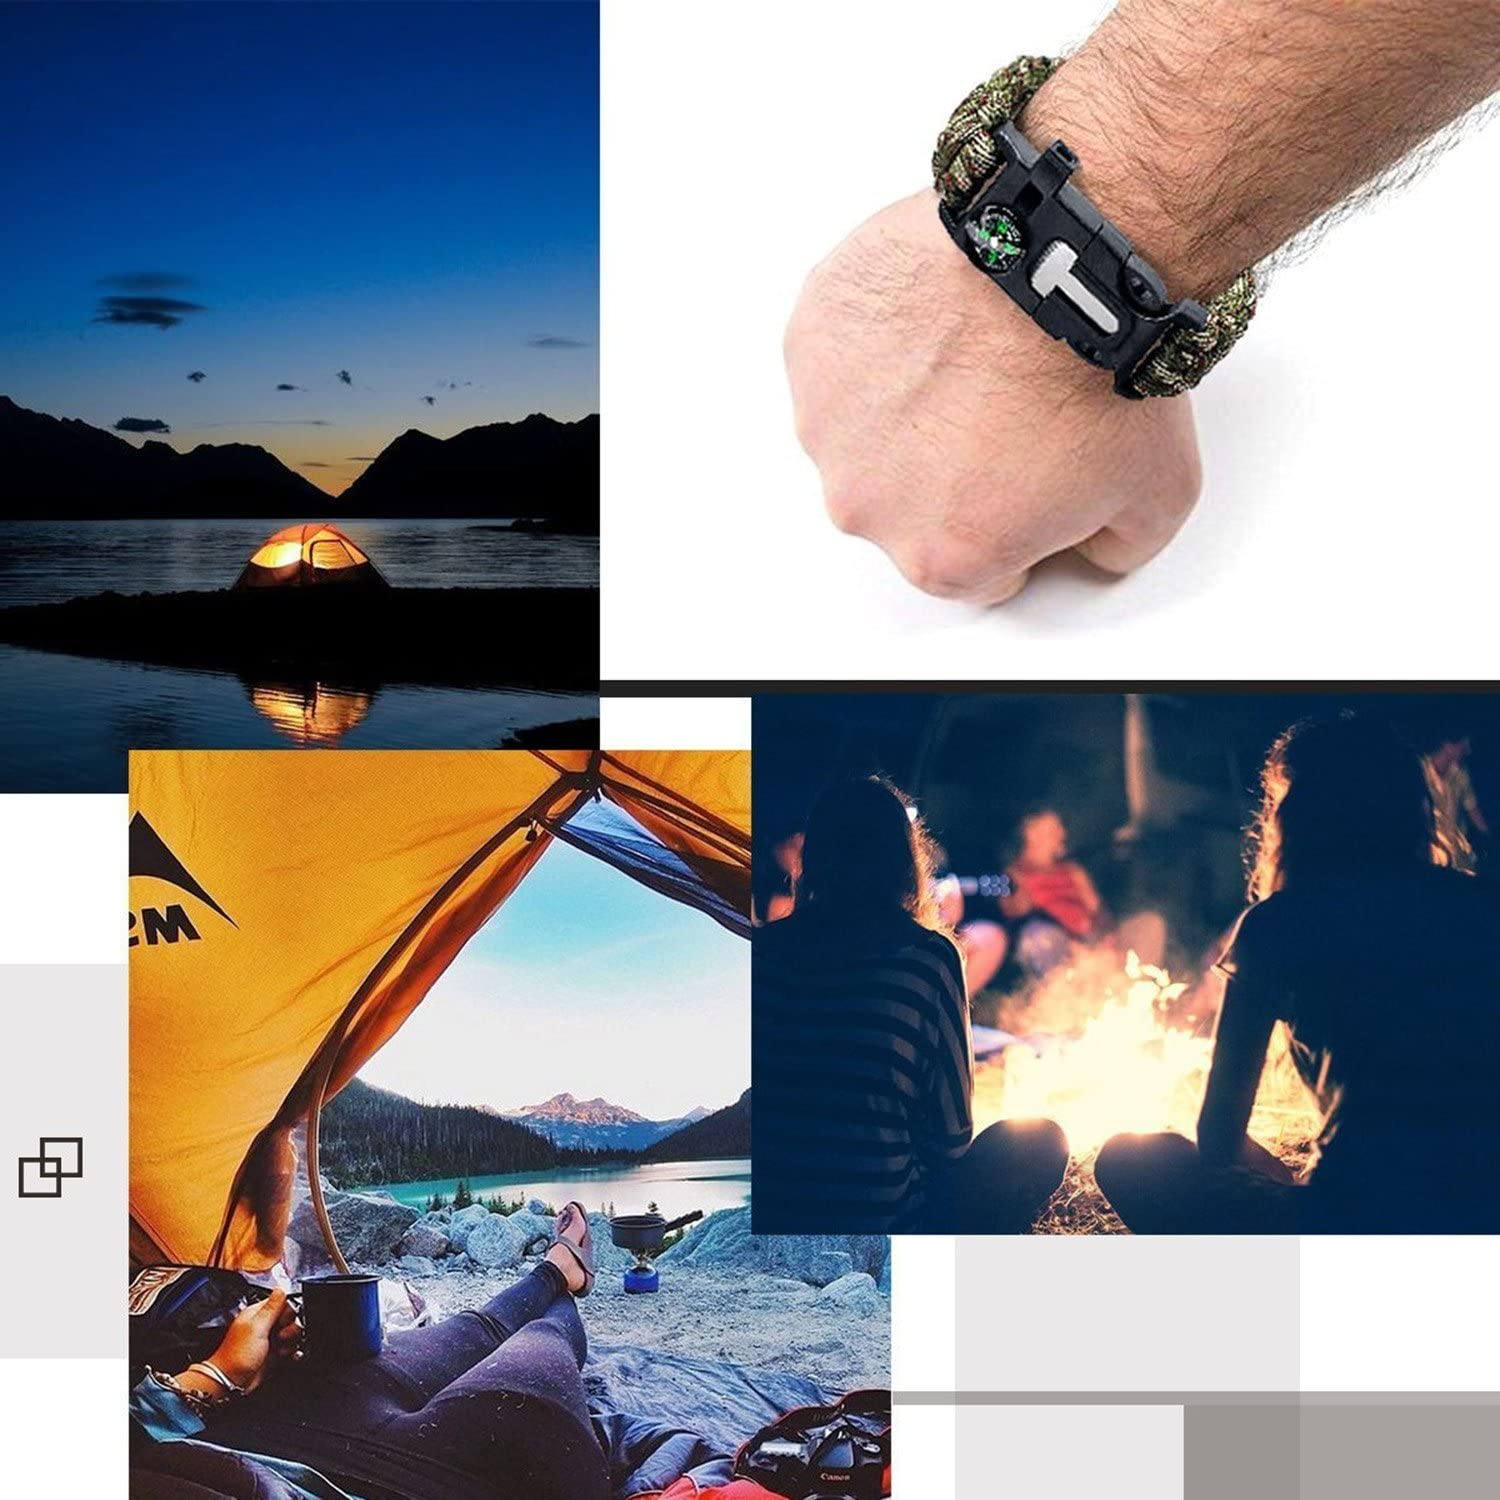 YOMOSI Survival Paracord Bracelet,5 in 1 Emergency Outdoor Survival Kit-Embedded Compass,Fire Starter,Emergency Knife,Whistle,Rescue Rope for Hiking/&Camping